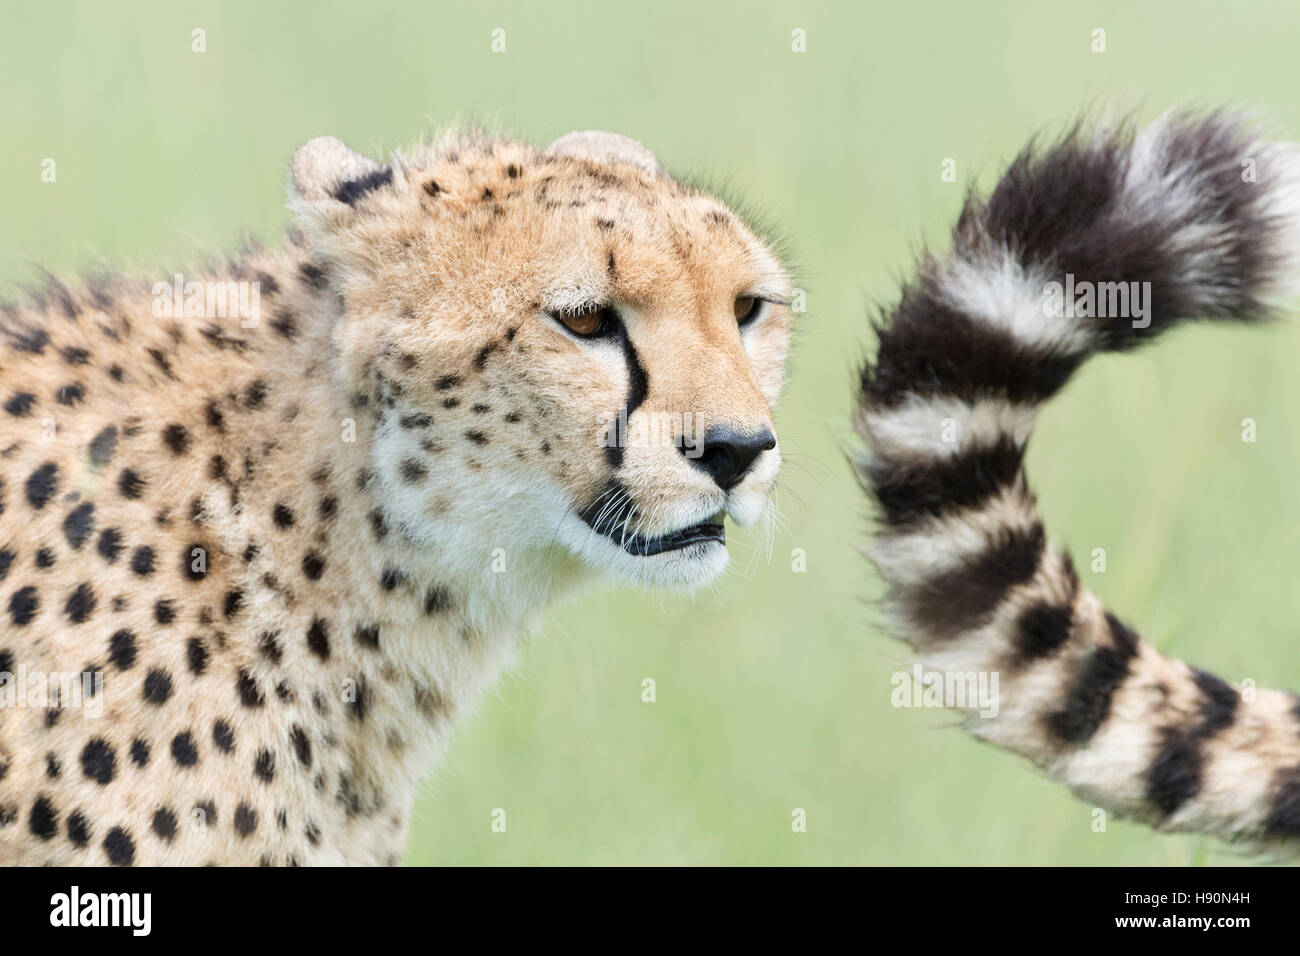 Cheetah (Acinonix jubatus) portrait and tail, Maasai Mara National Reserve, Kenya - Stock Image